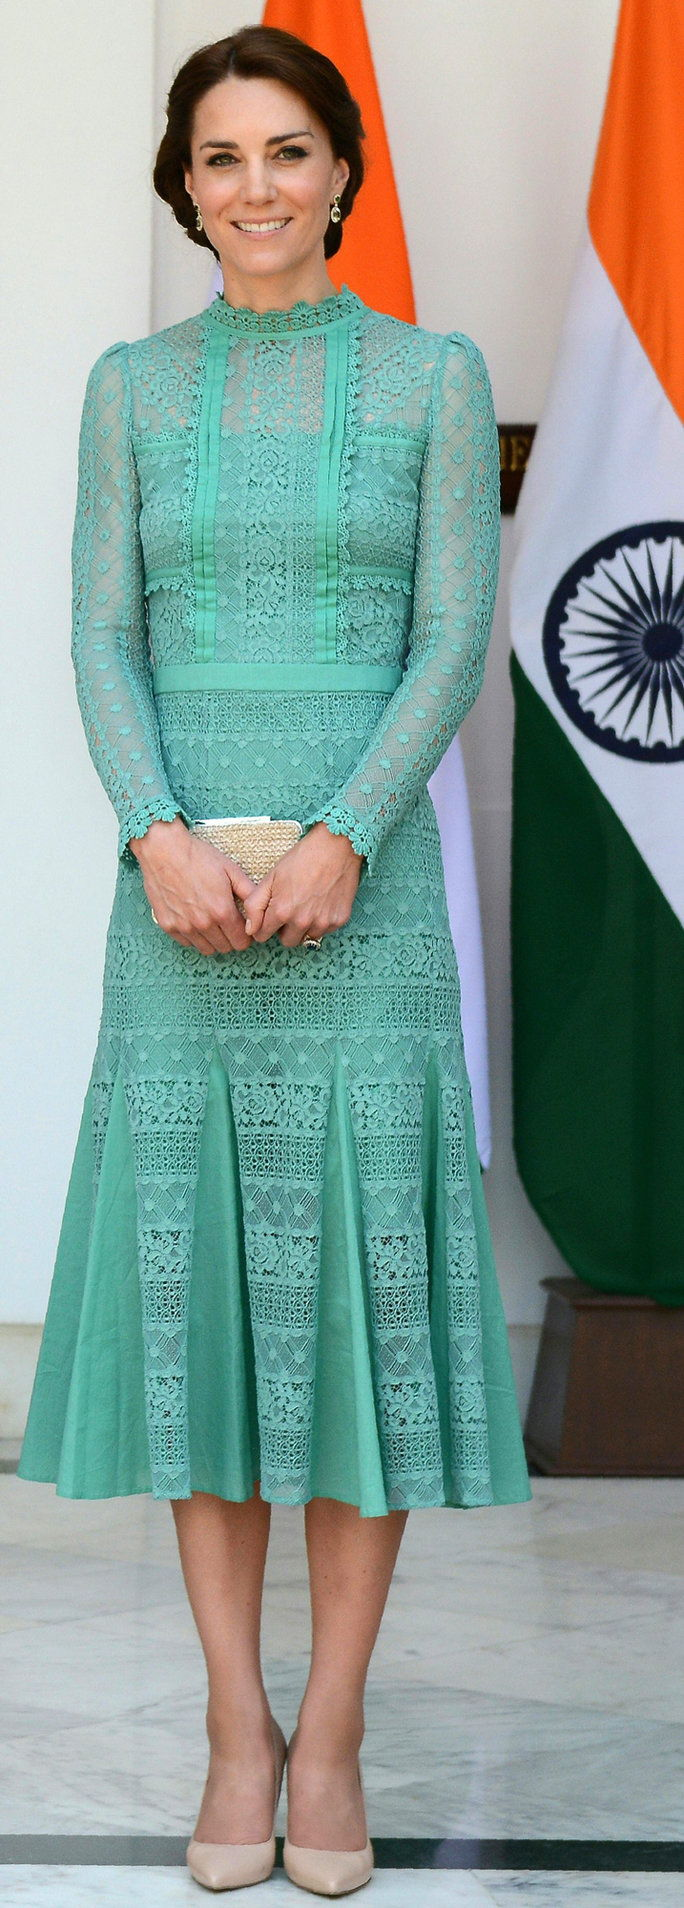 Великобритания's Catherine, Duchess of Cambridge looks on ahead of a lunch event with India's Prime Minister Narendra Modi at Hyderabad House in New Delhi on April 12, 2016.